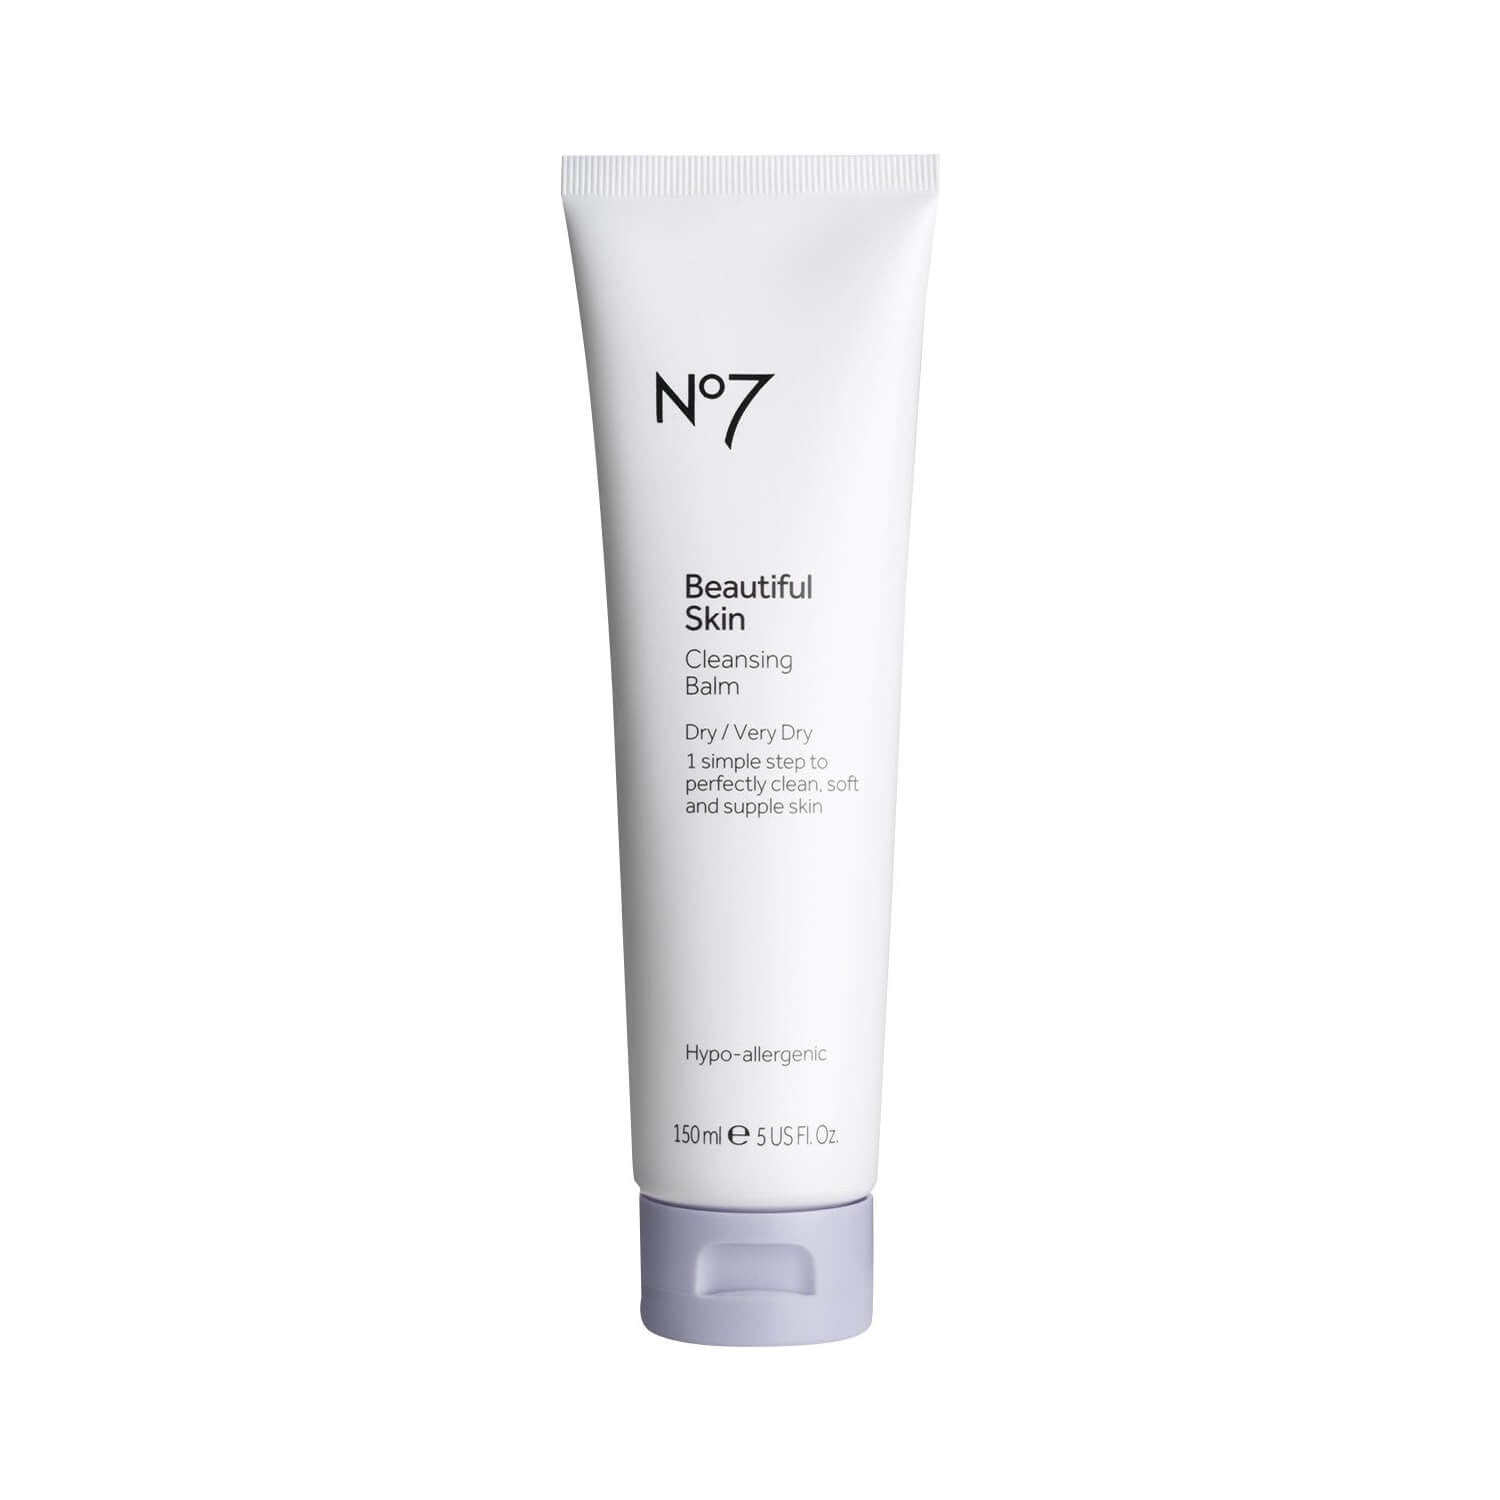 Boots No7 Beautiful Skin Cleansing Balm for Dry Very Dry Skin 150ml